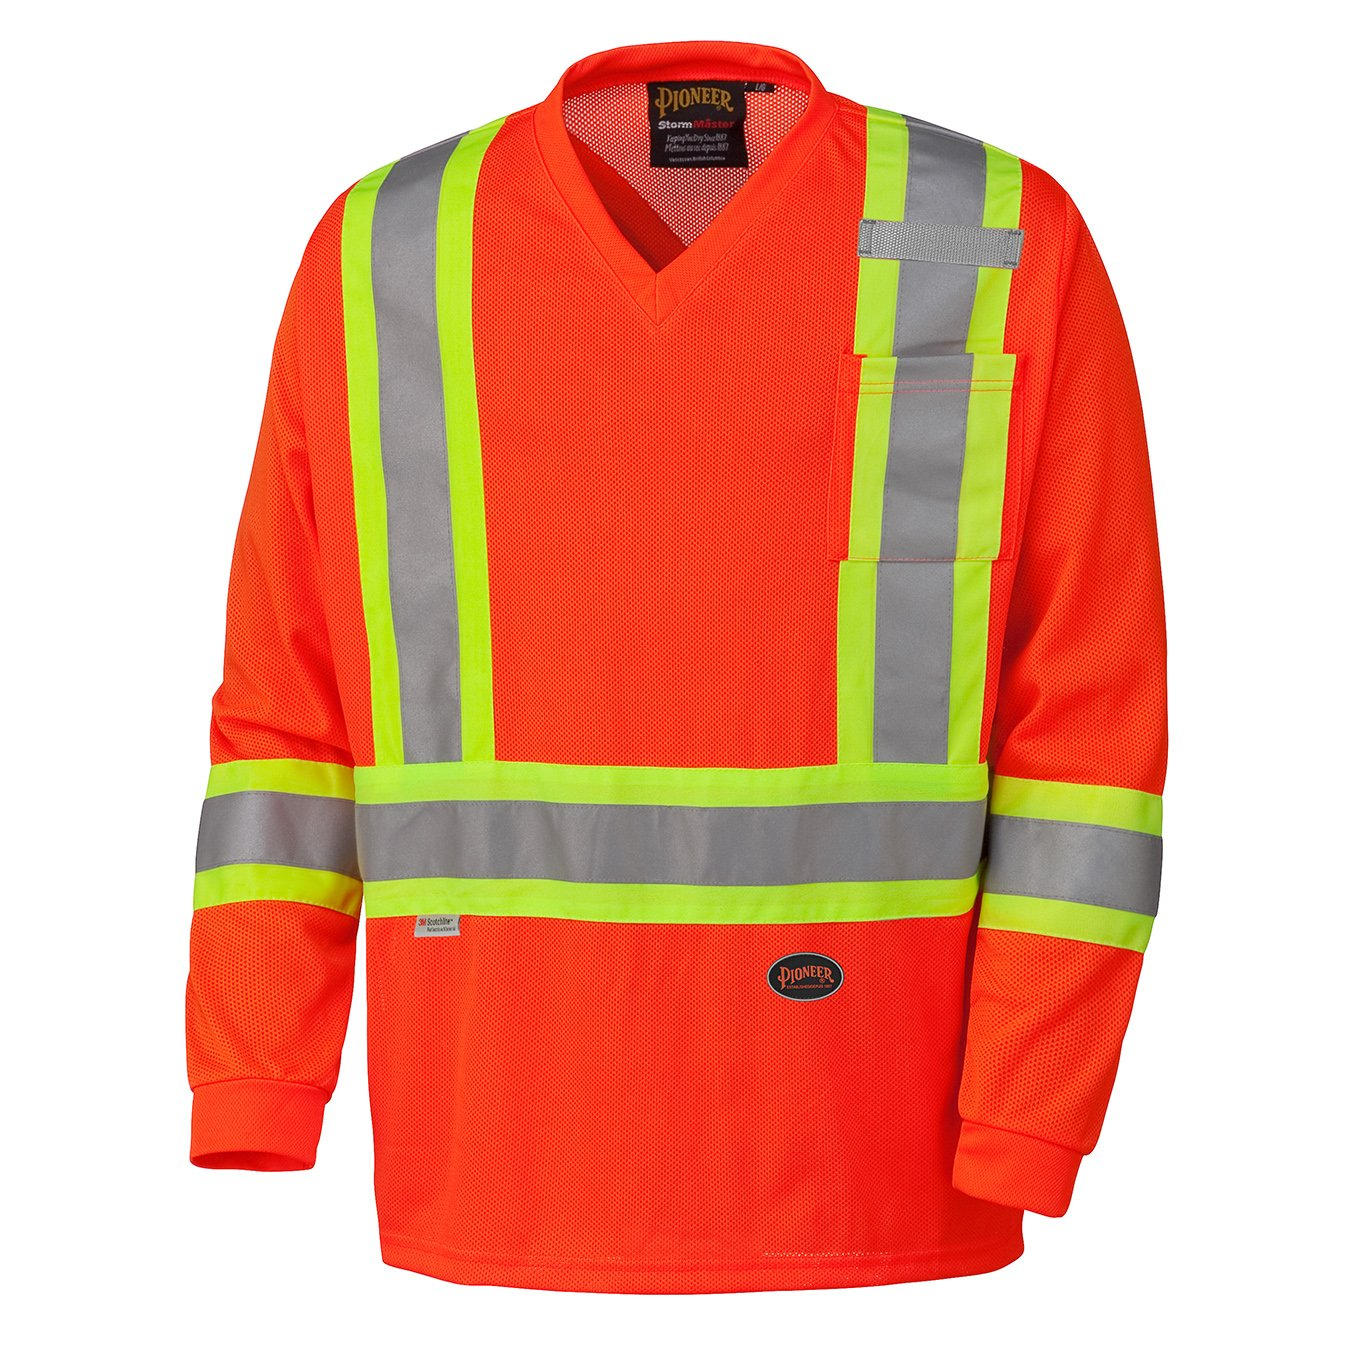 Pioneer V1050950-2XL High Visibility Long Sleeve Safety Shirt, Micro Mesh, Orange, 2XL